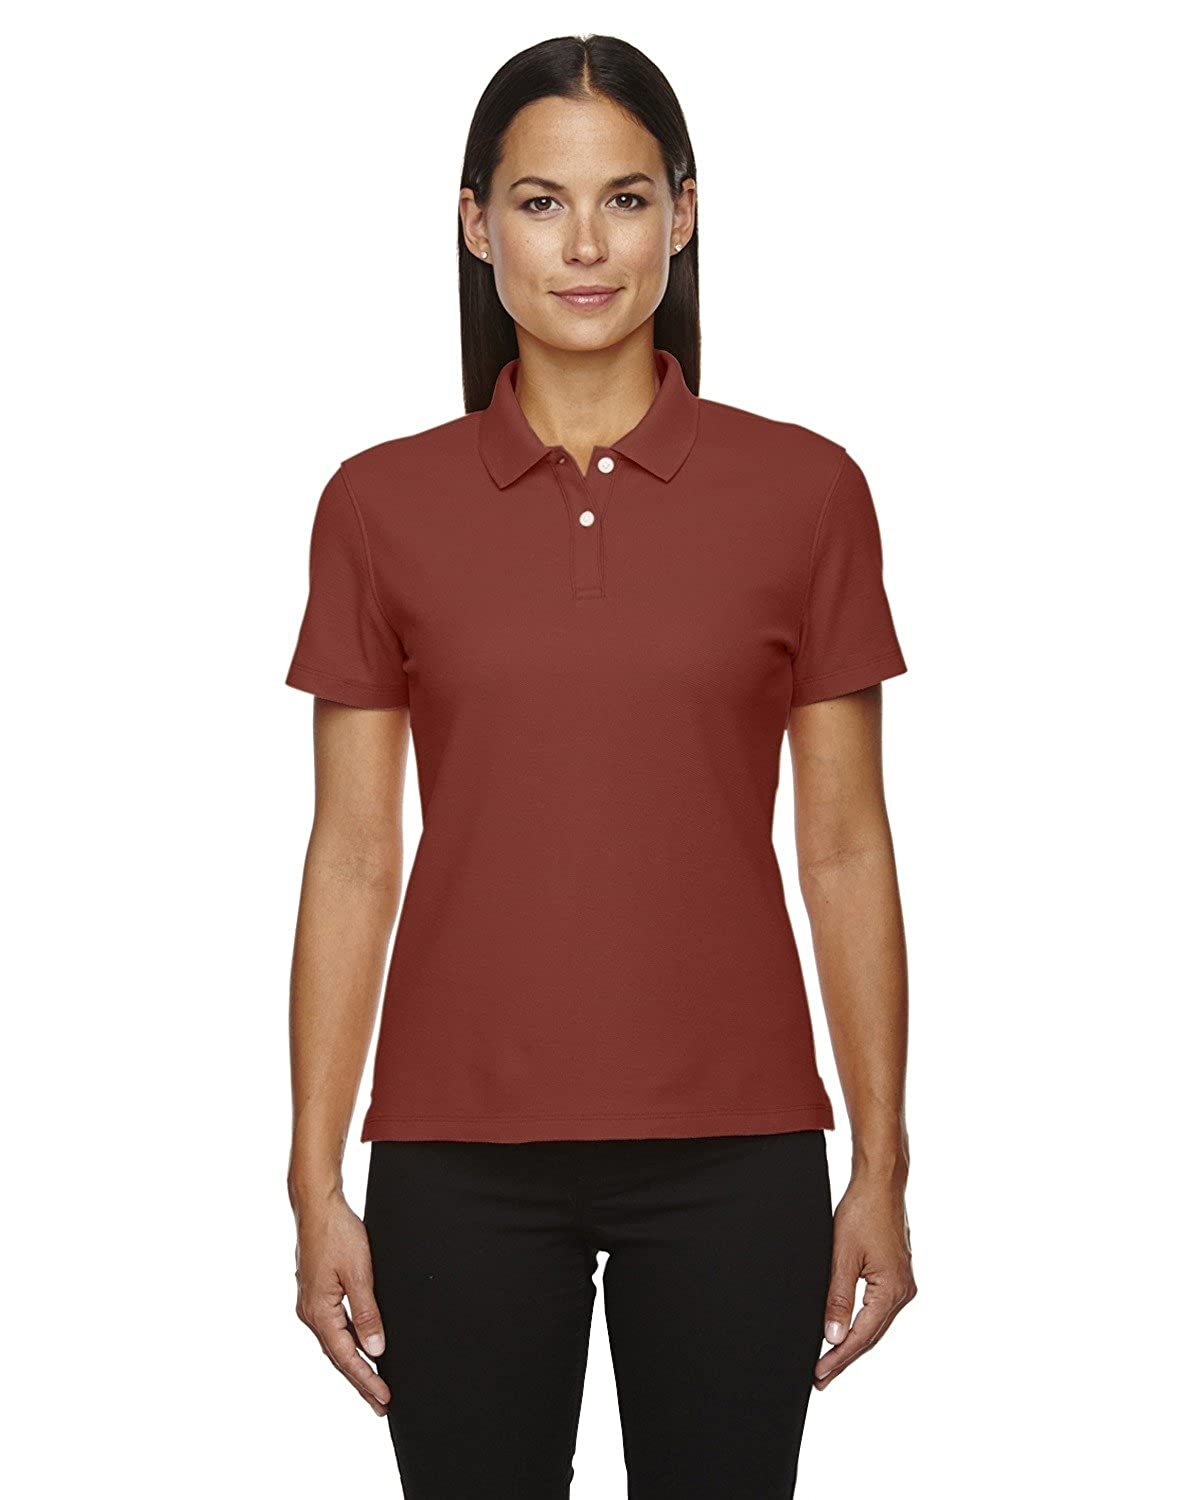 41e820d08a9 Amazon.com  Averill s Sharper Uniforms Women s Ladies Moisture Wicking  Cotton Waitstaff Polo Shirts  Clothing